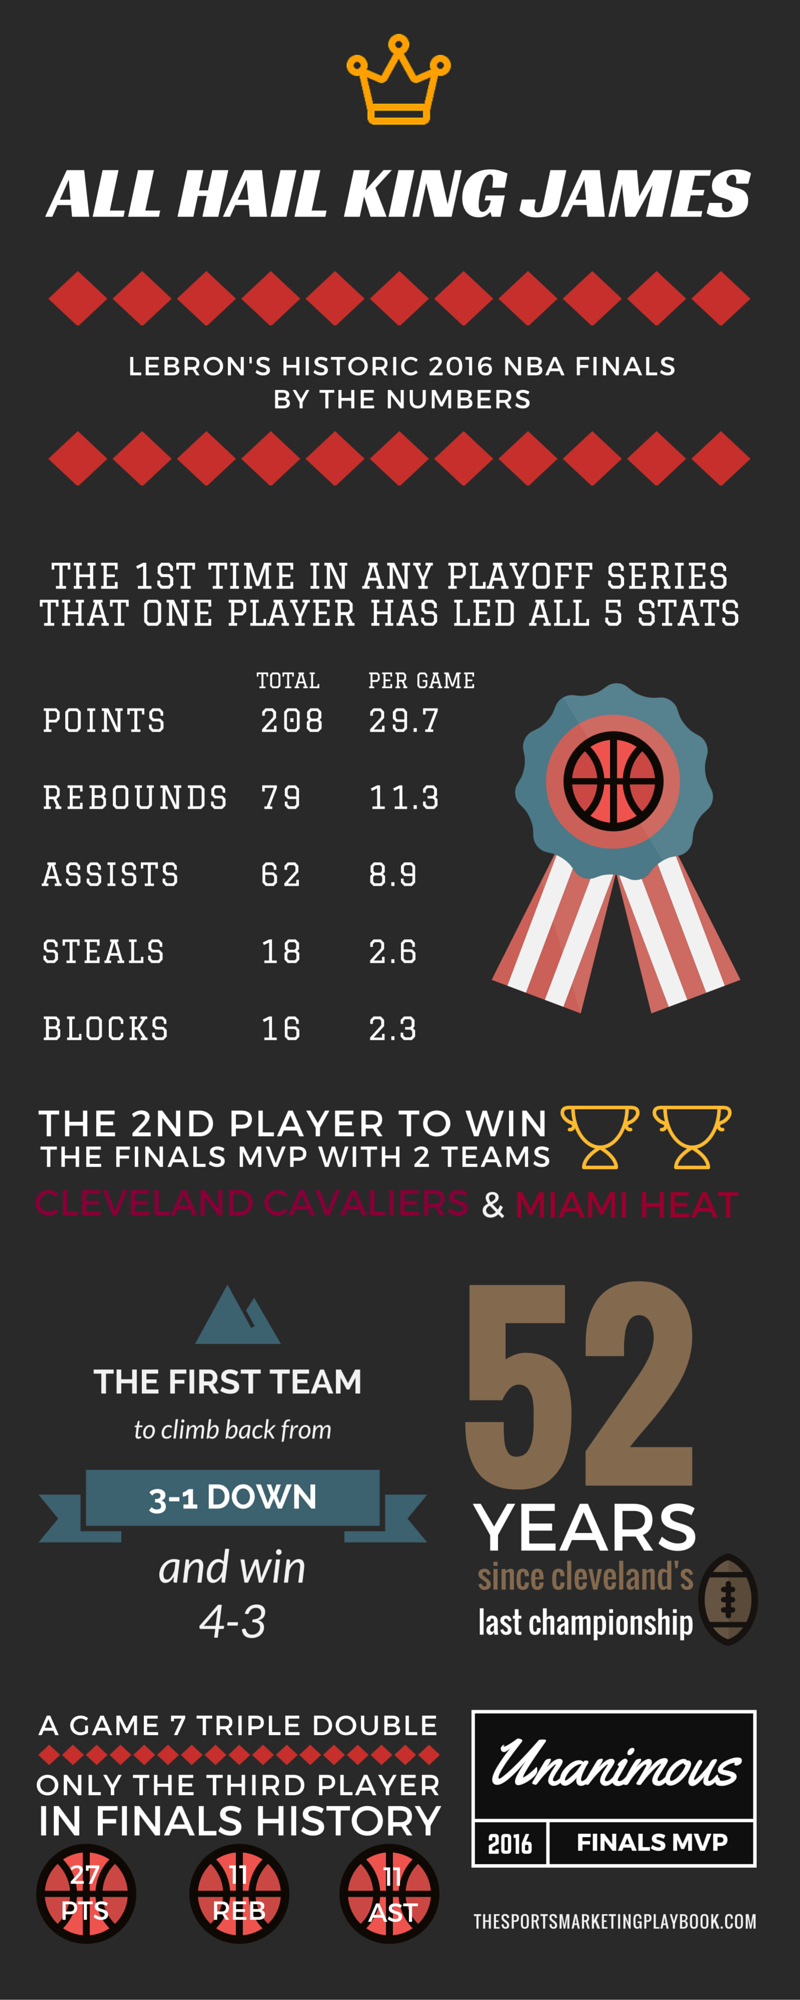 LeBron James Infographic 2016 NBA Finals Numbers.